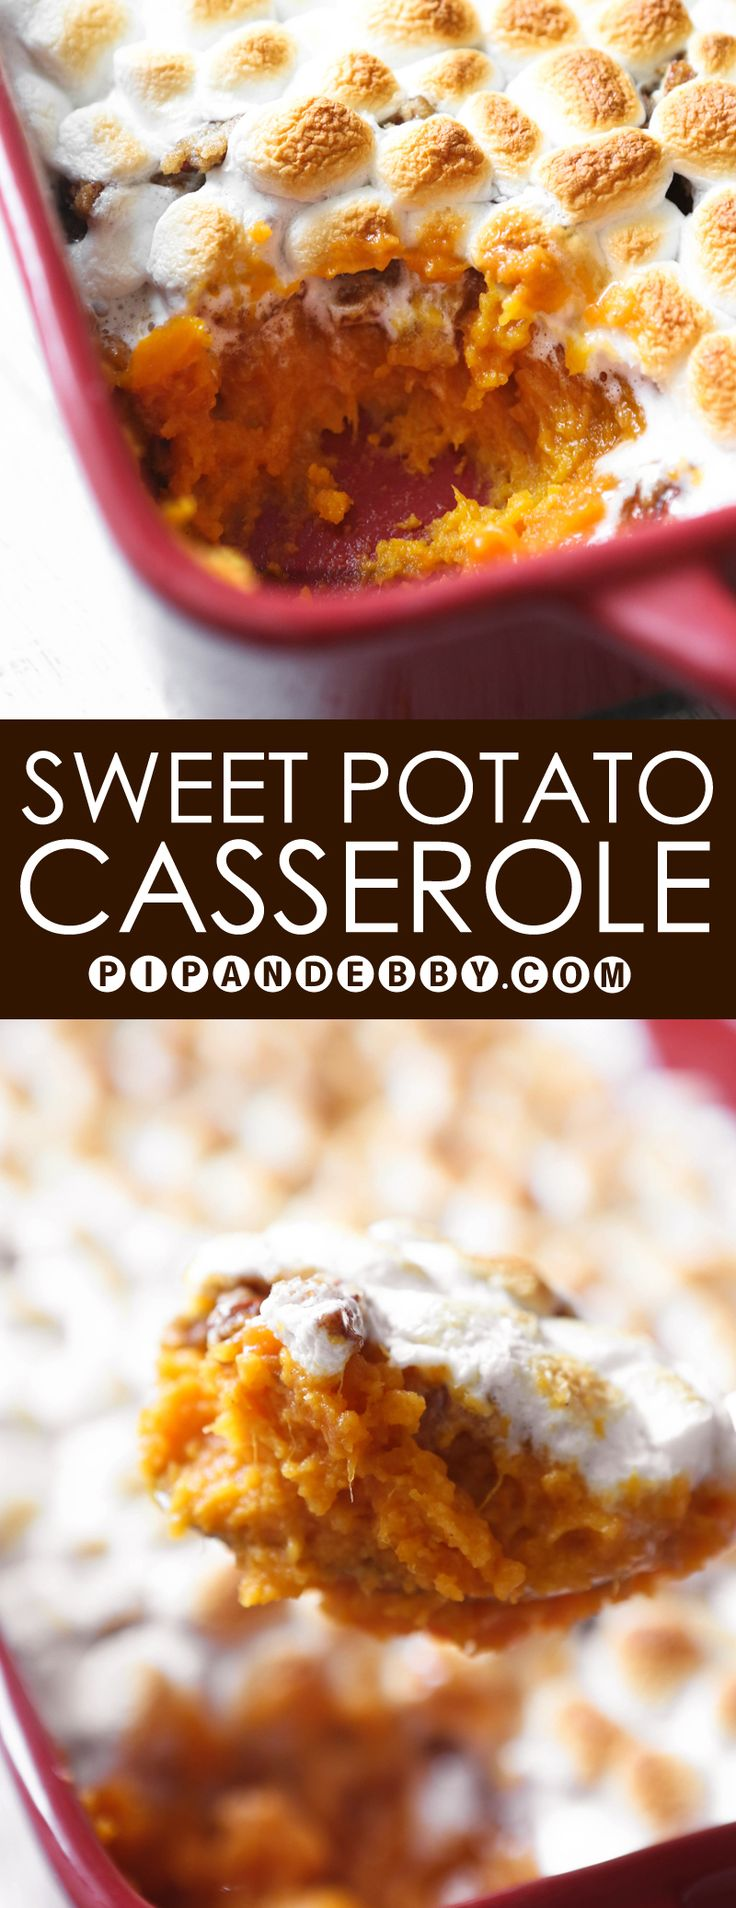 Sweet Potato Casserole   This side dish is SO YUMMY and is sure to please everyone, kids and adults alike.